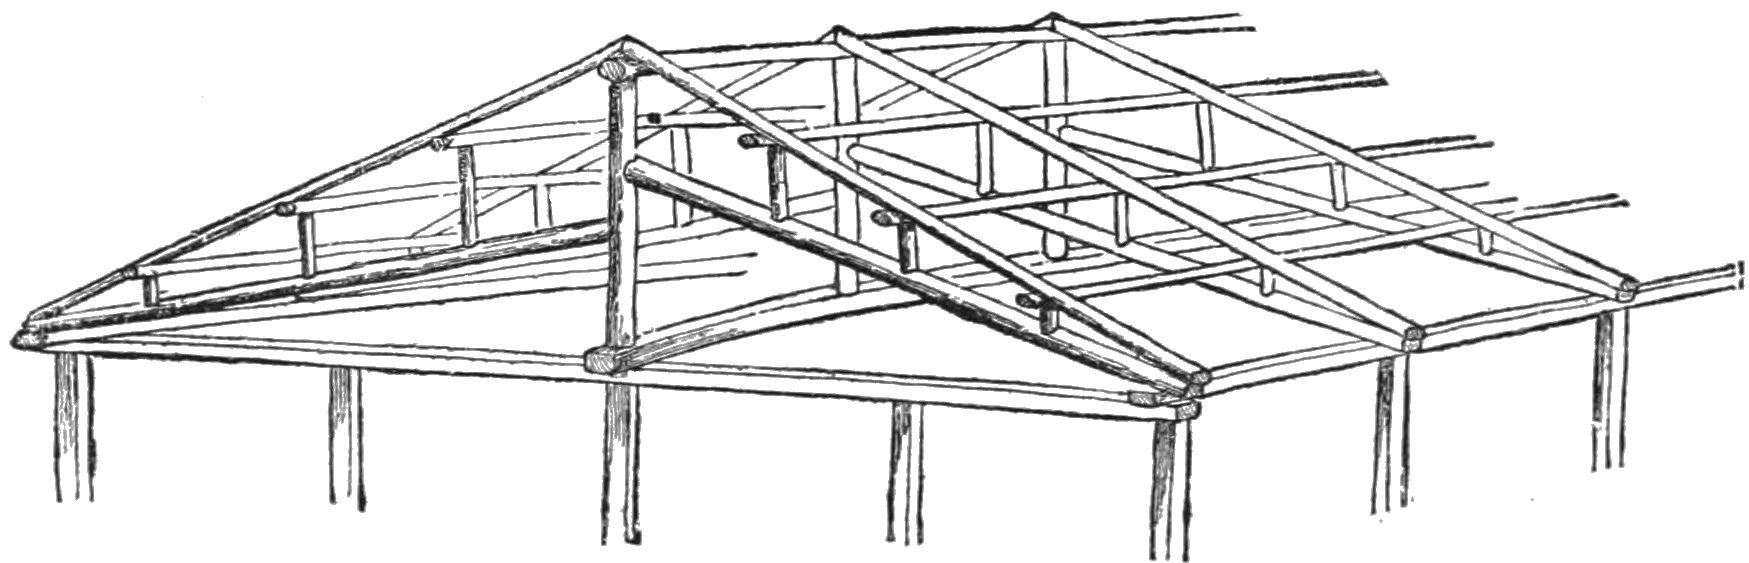 File:PSM V28 D667 Roof frame of a large building.jpg - Wikimedia Commons